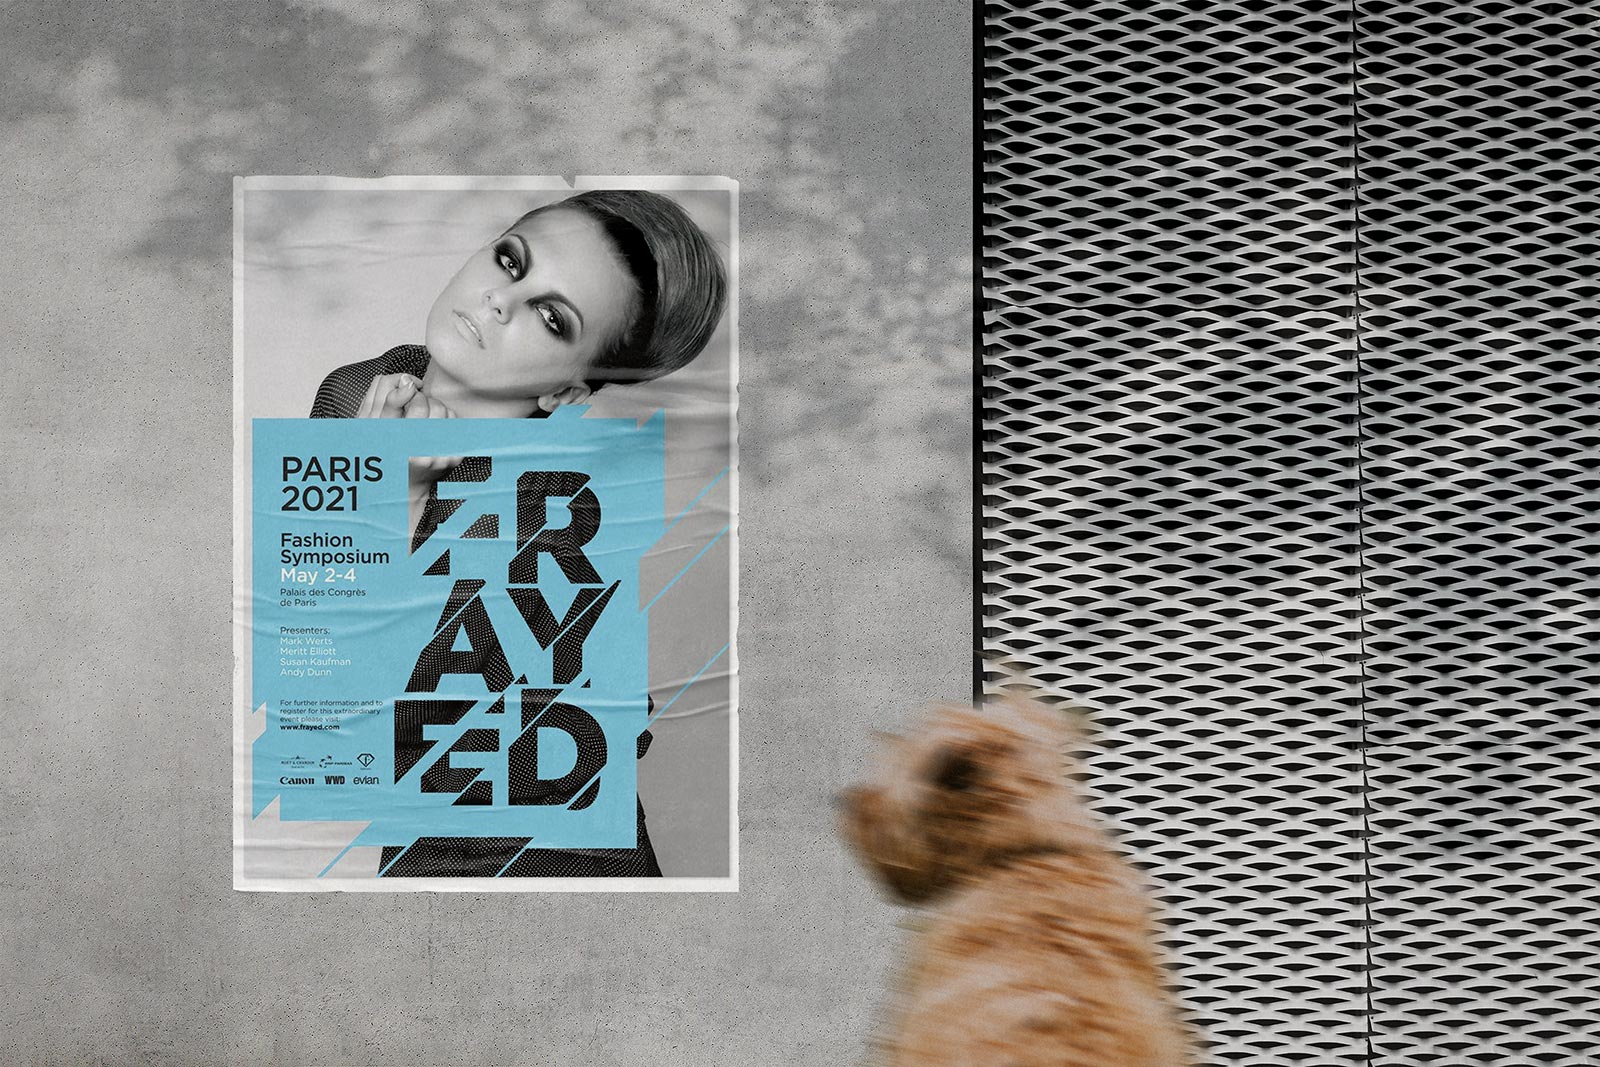 Insert poster design on smart object and get a cool pasted wrinkled effect. Free Street Wall Glued Poster Mockup Psd Good Mockups